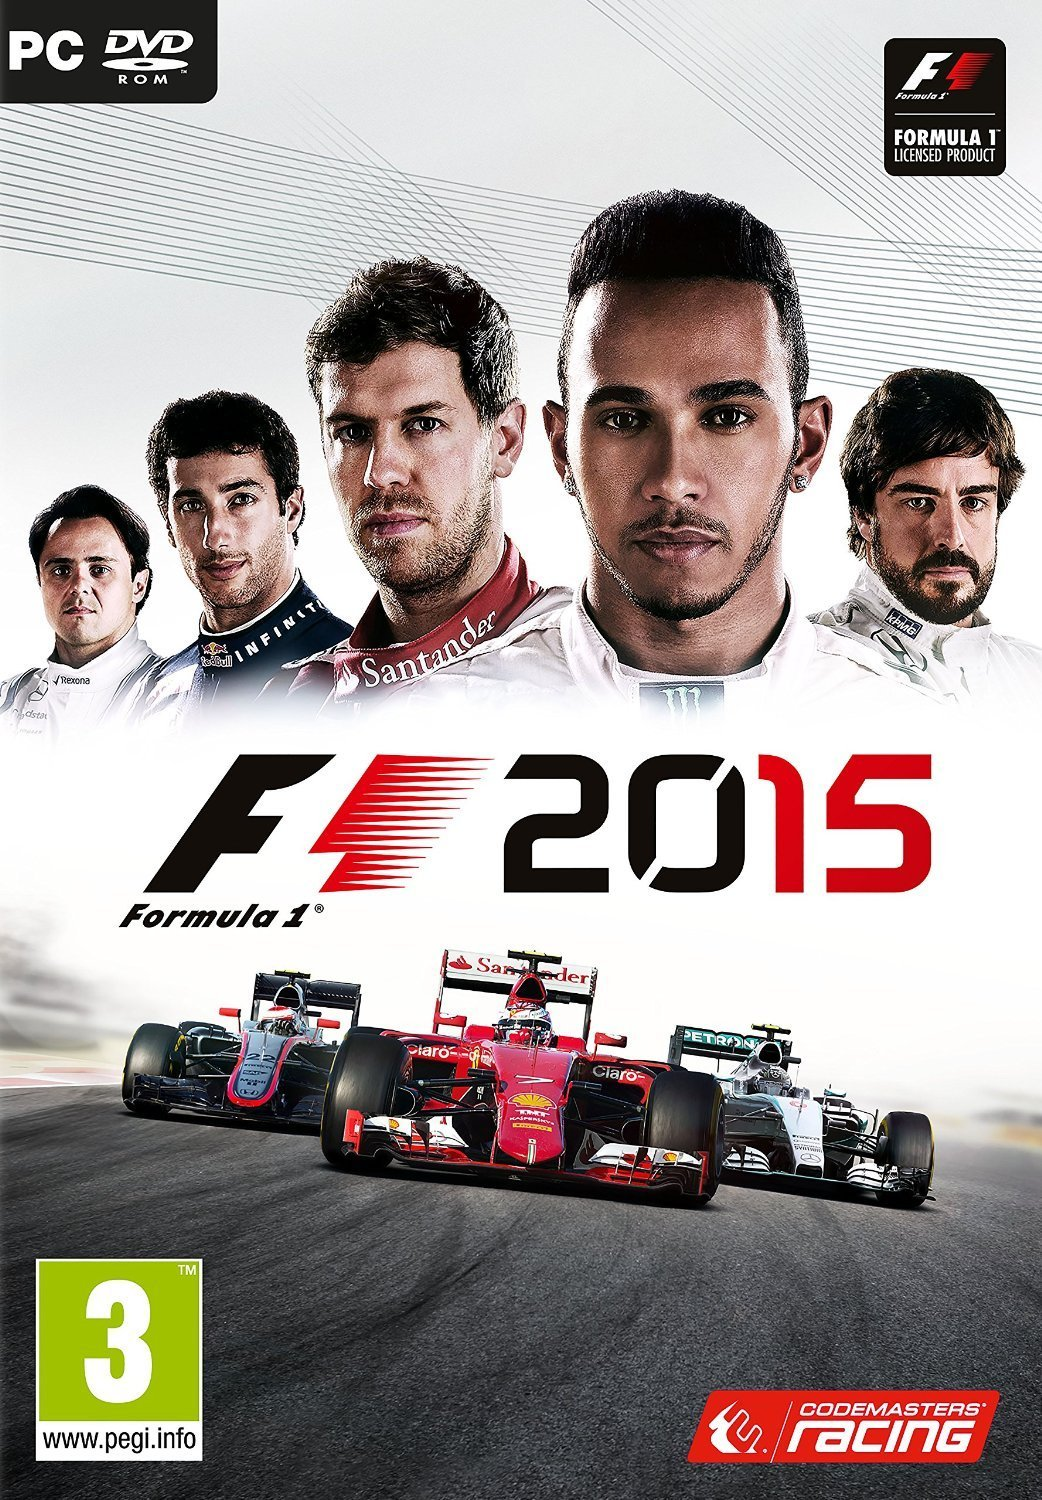 PC F1 2015 Formula One for Windows